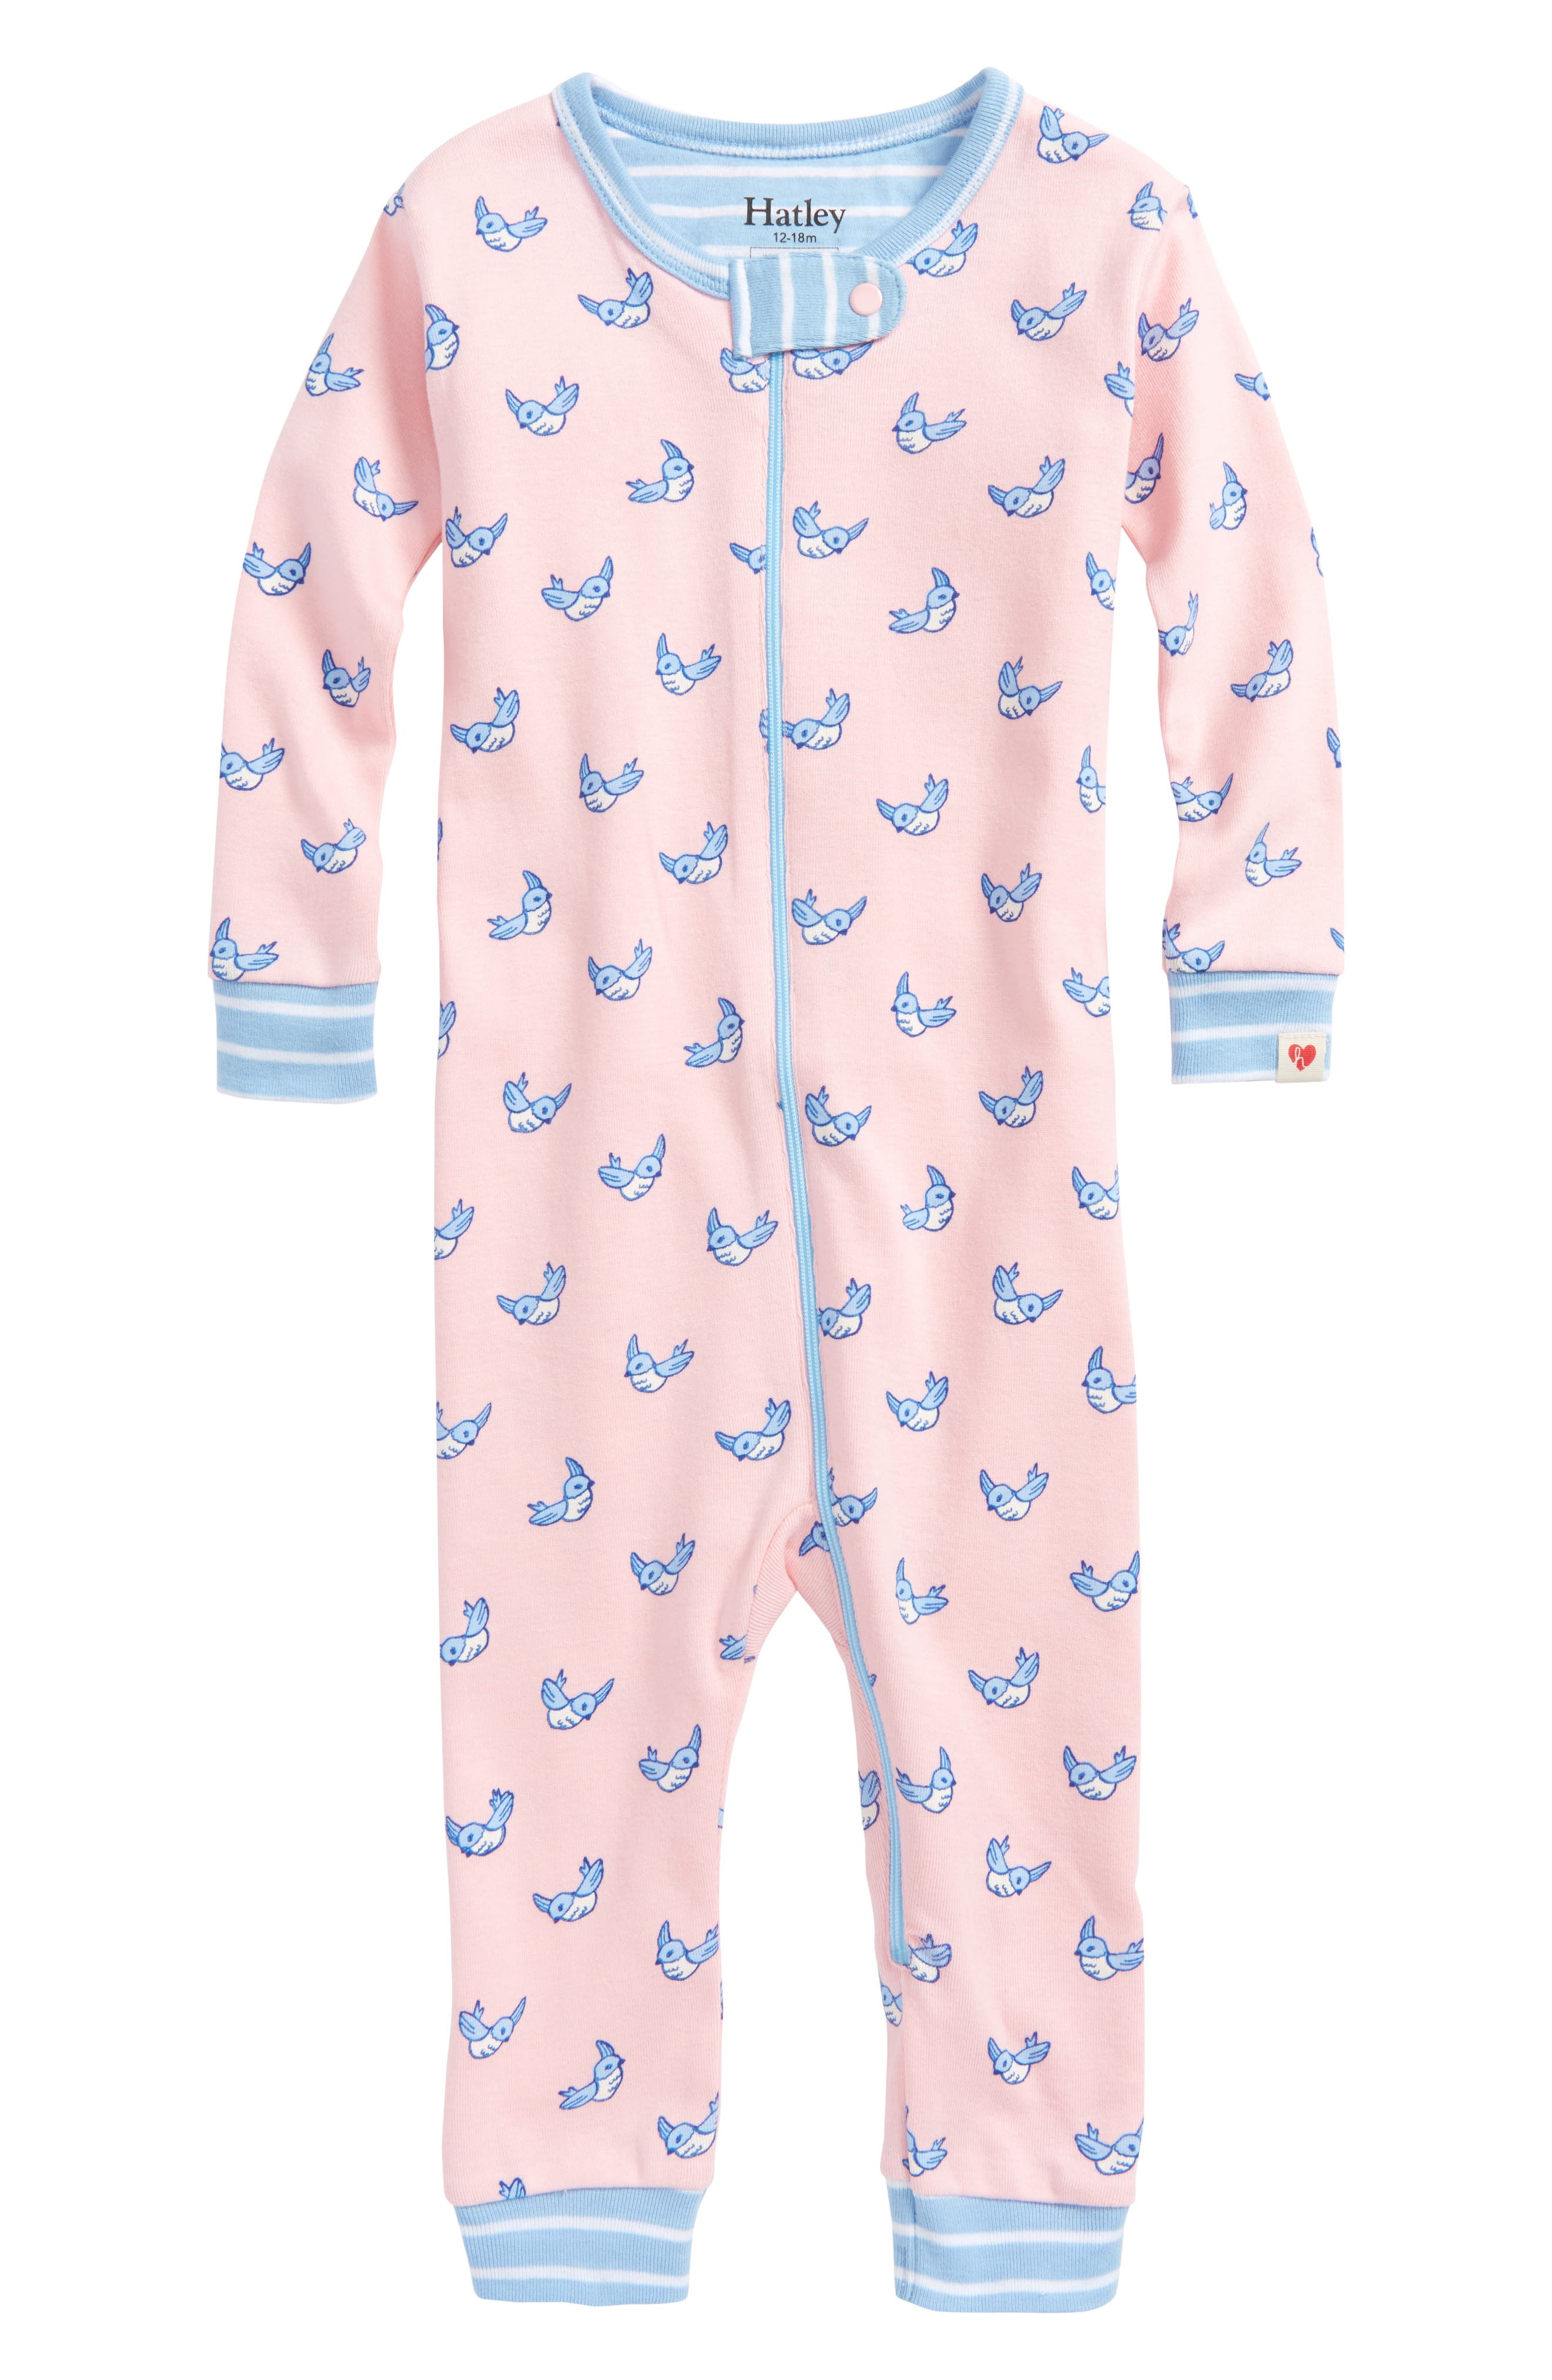 Fluttering Birds Organic Cotton Fitted One-Piece Pajamas,                             Main thumbnail 1, color,                             Fluttering Birds